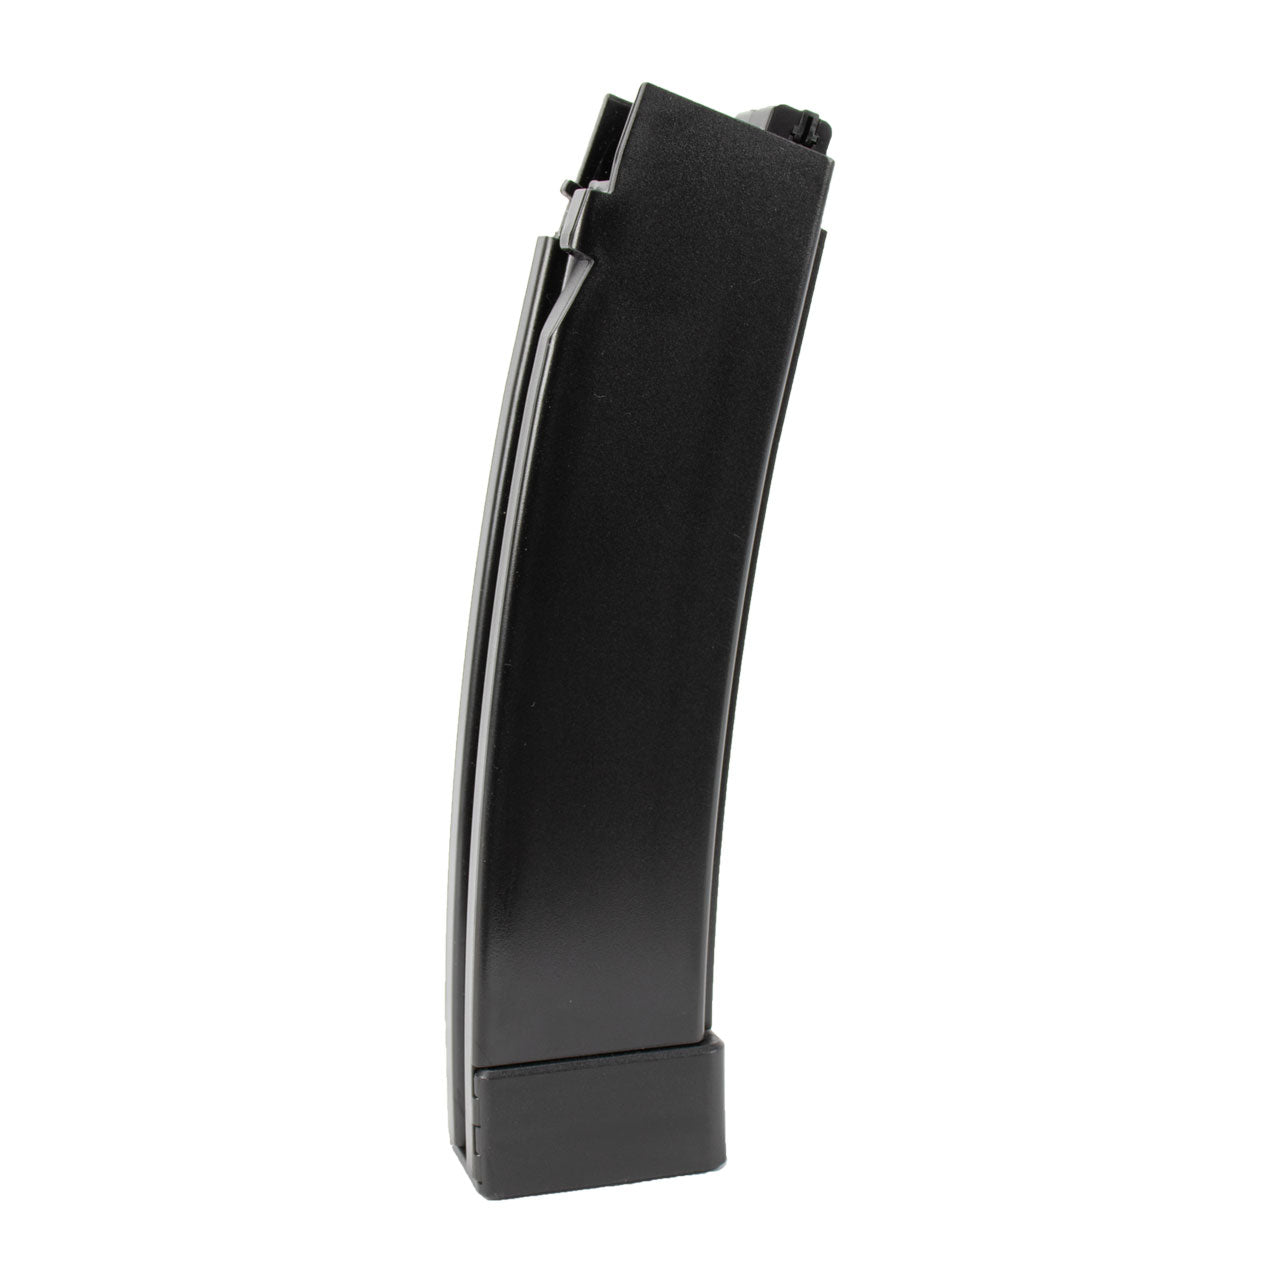 ASG 75rd Standard Magazine for CZ Scorpion EVO 3 A1 AEG - Black (Box of 3)